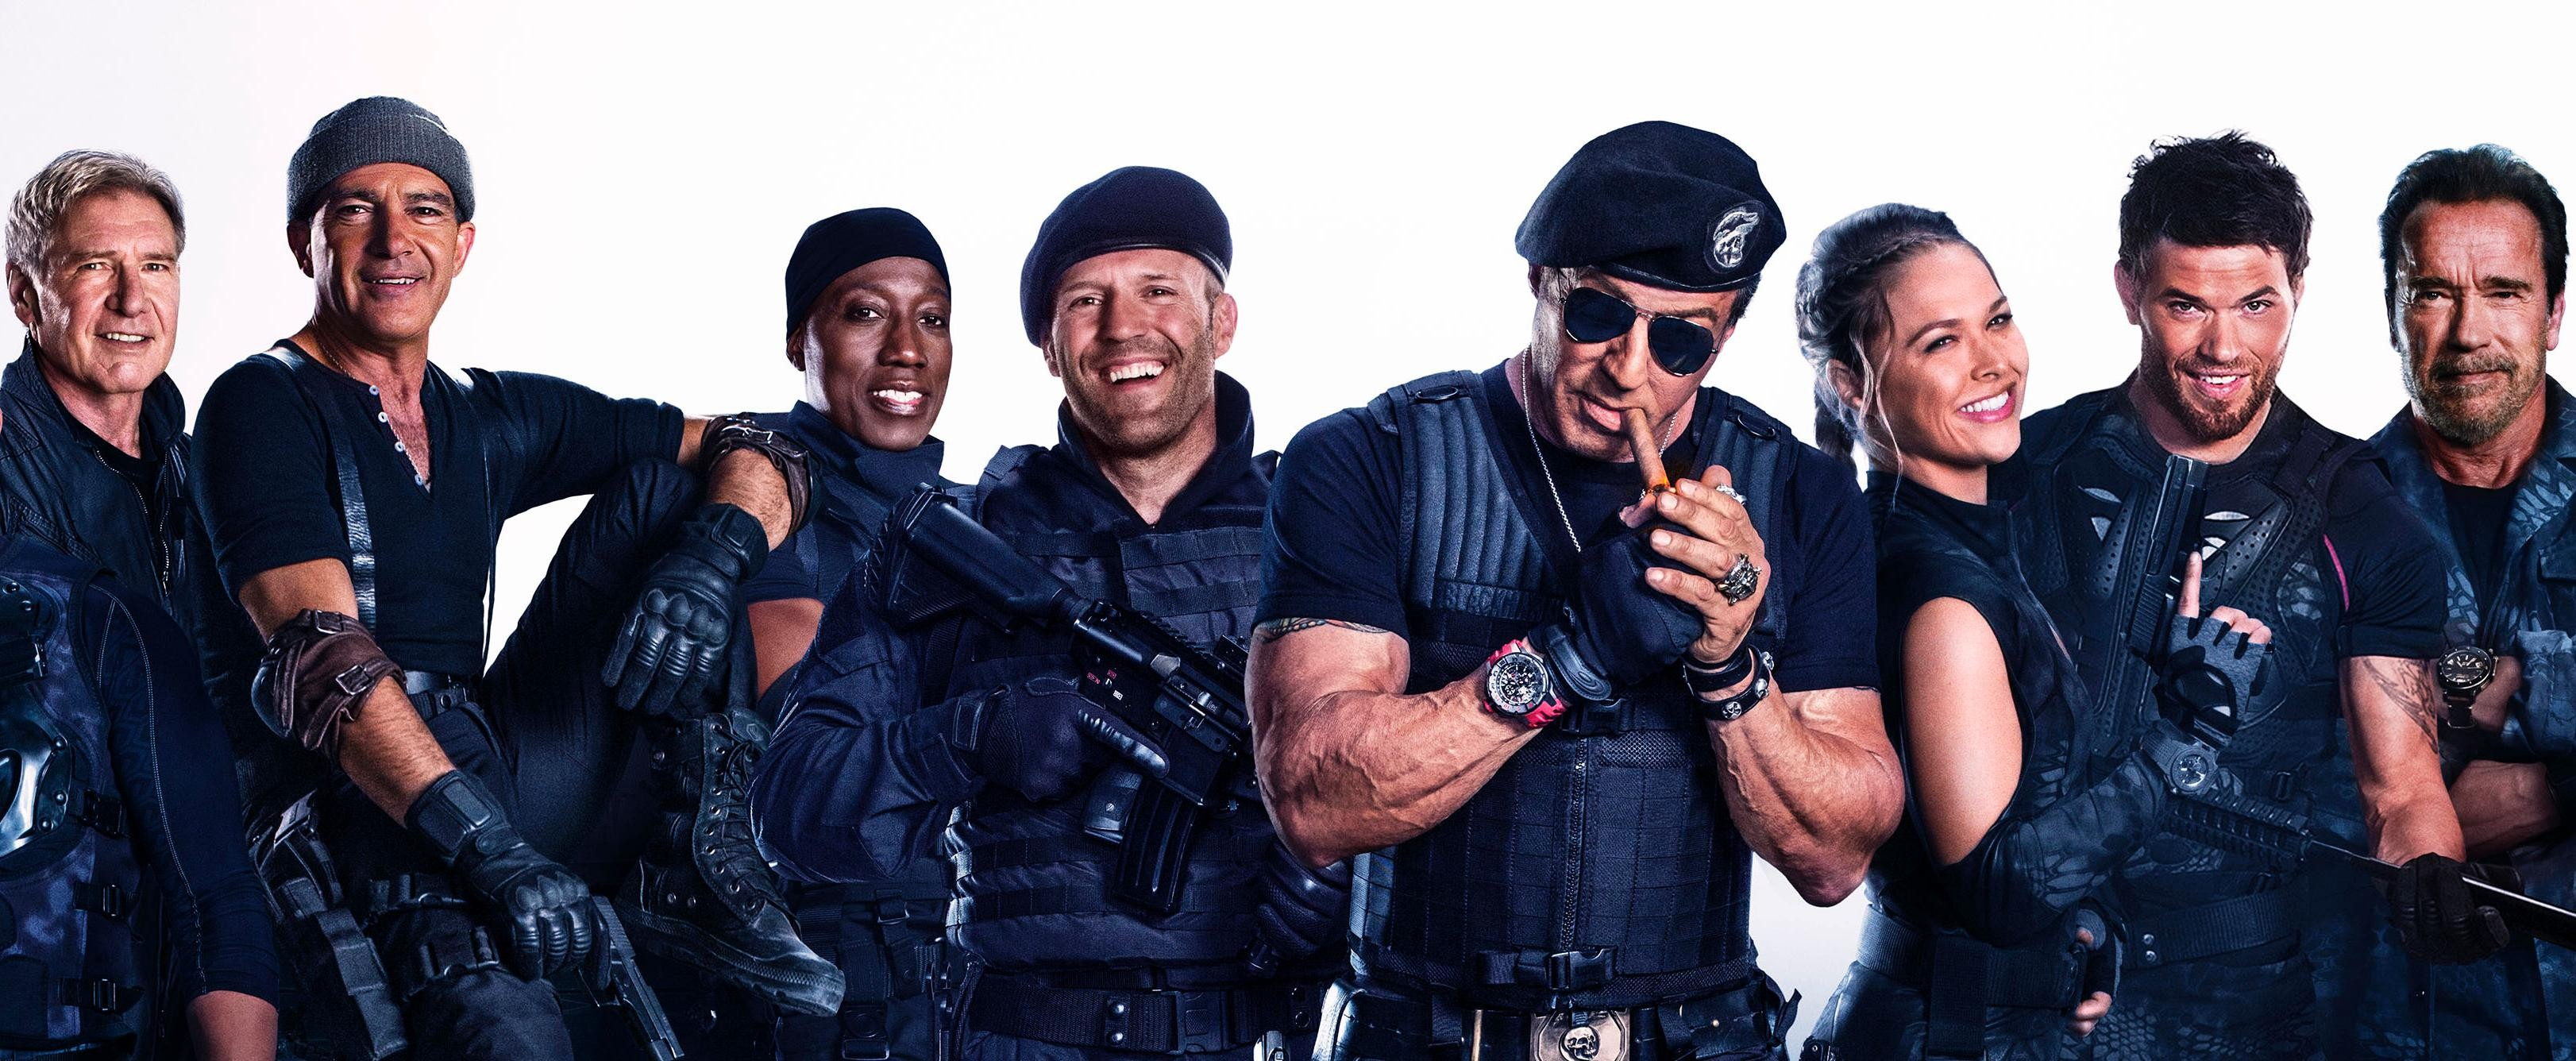 Download The Expendables 3 HD